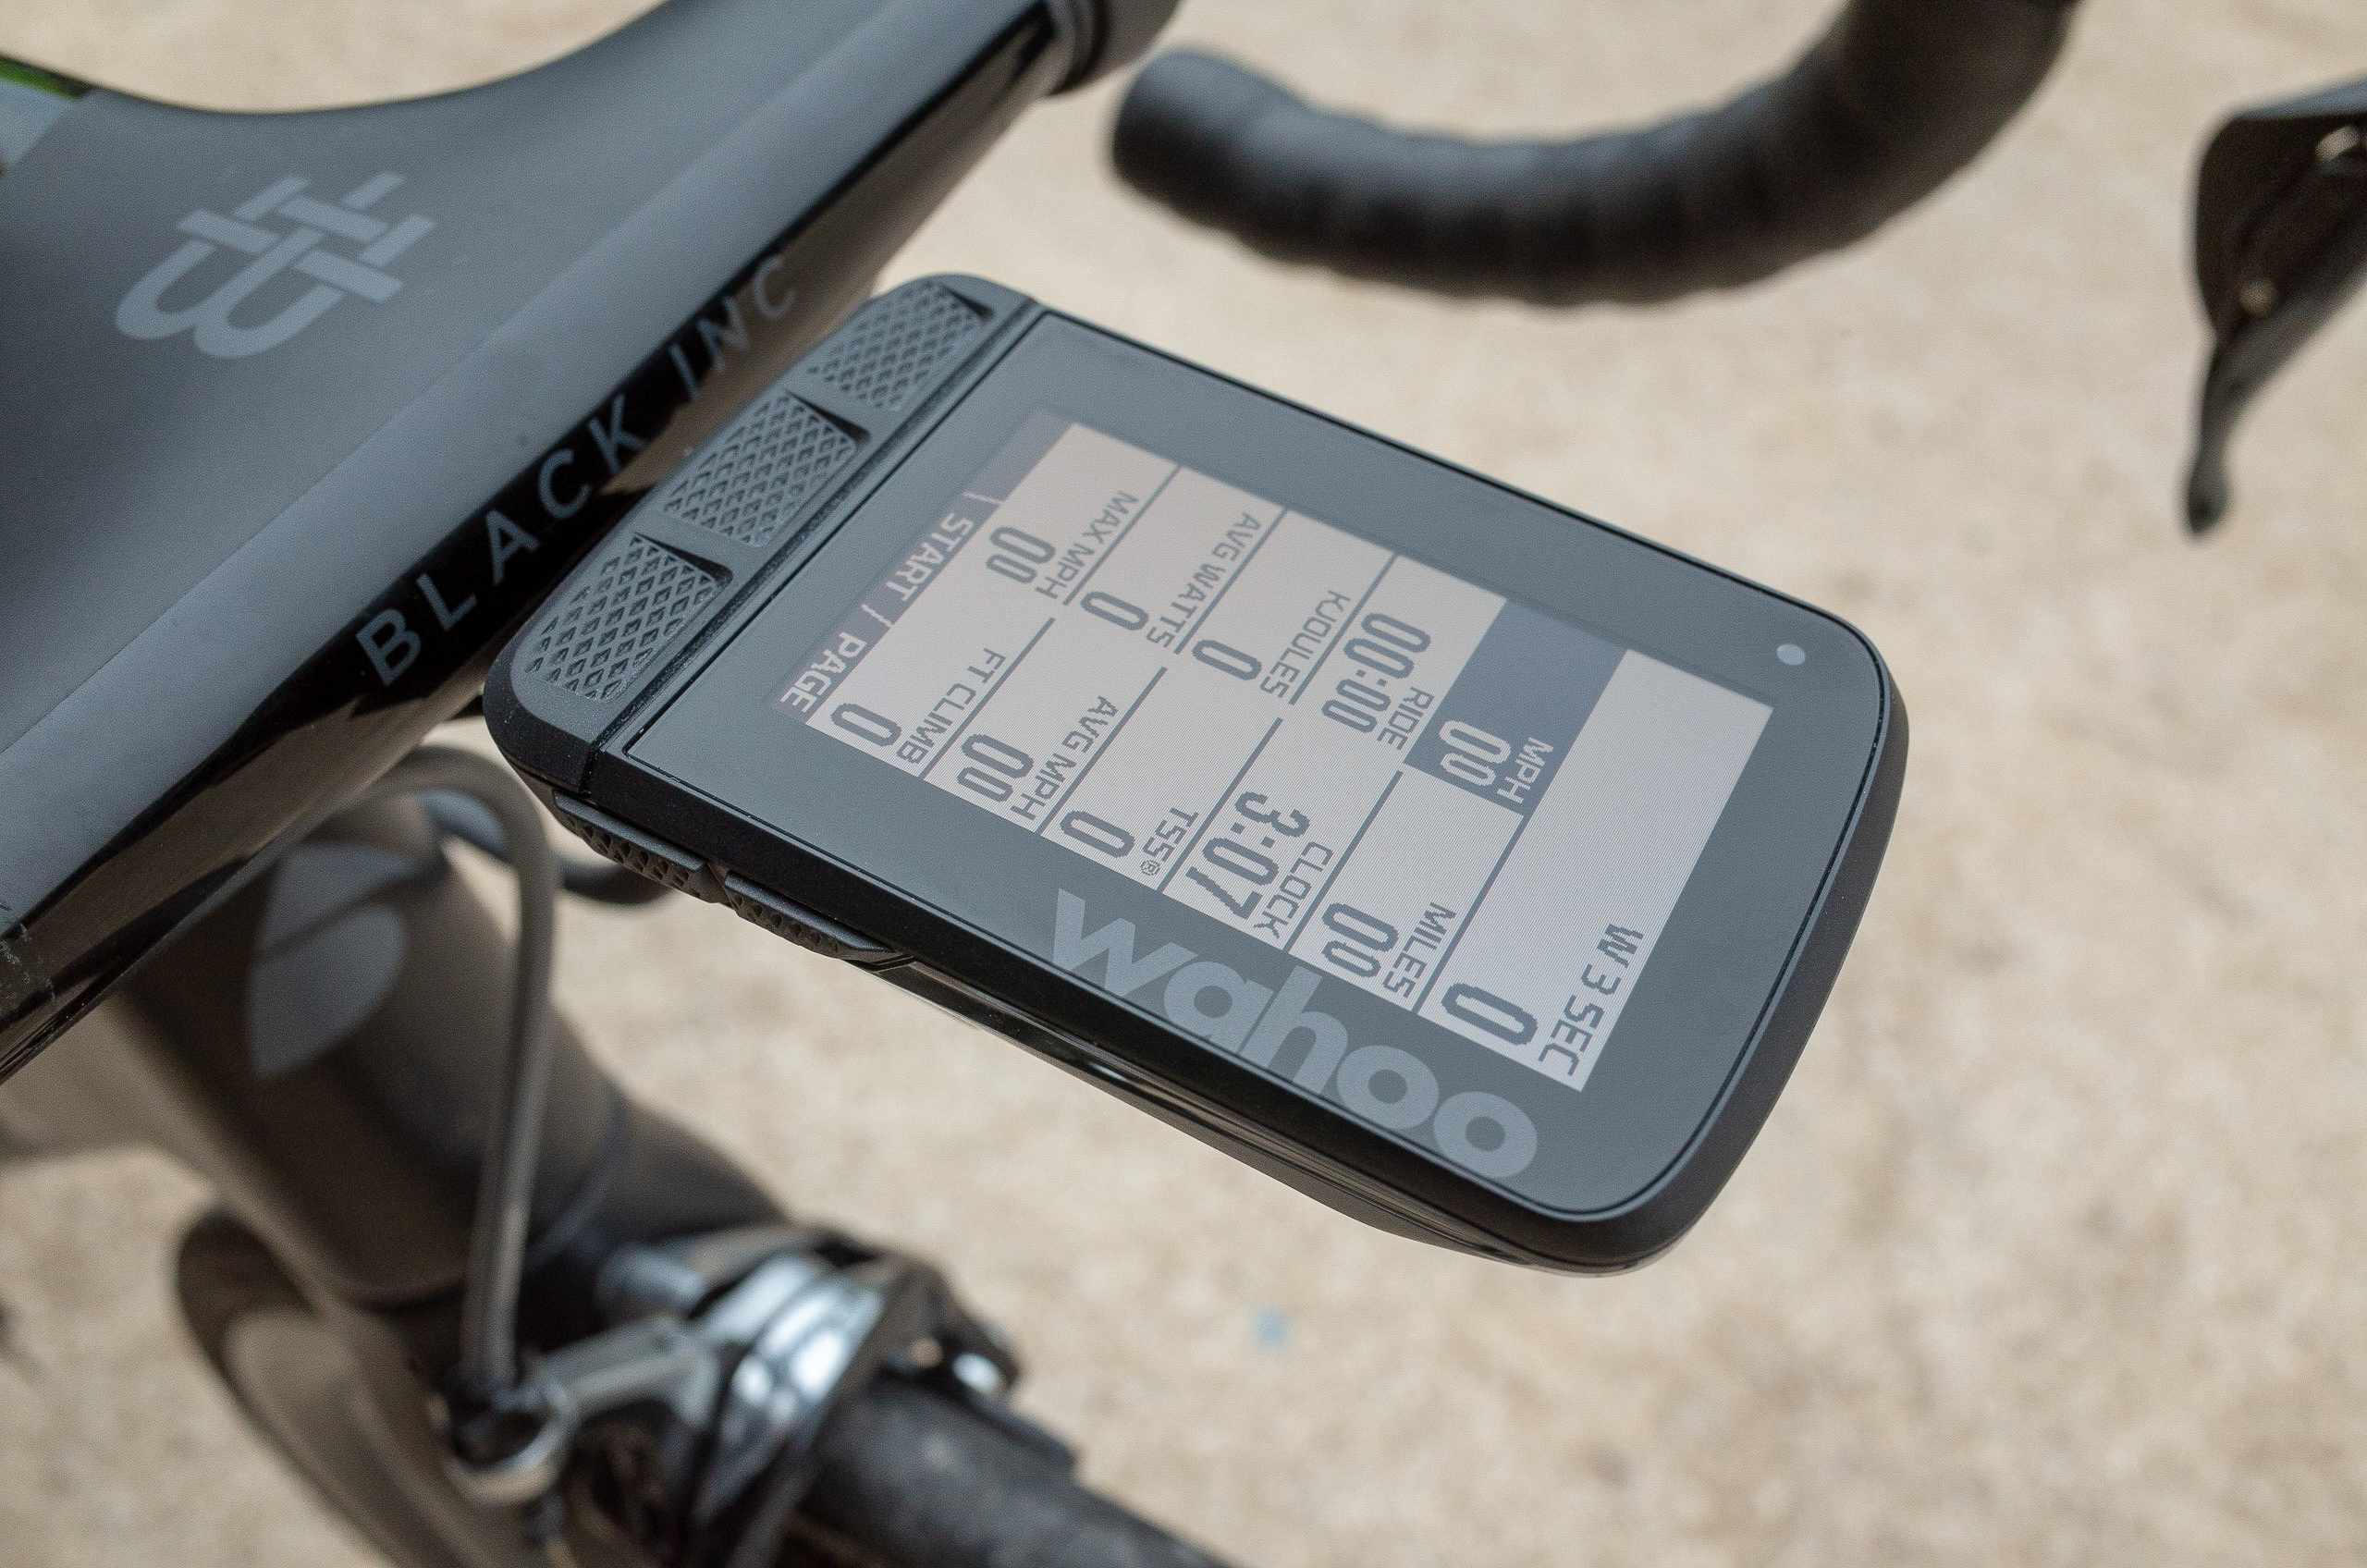 The Elemnt Roam is Wahoo's new flagship GPS bike computer